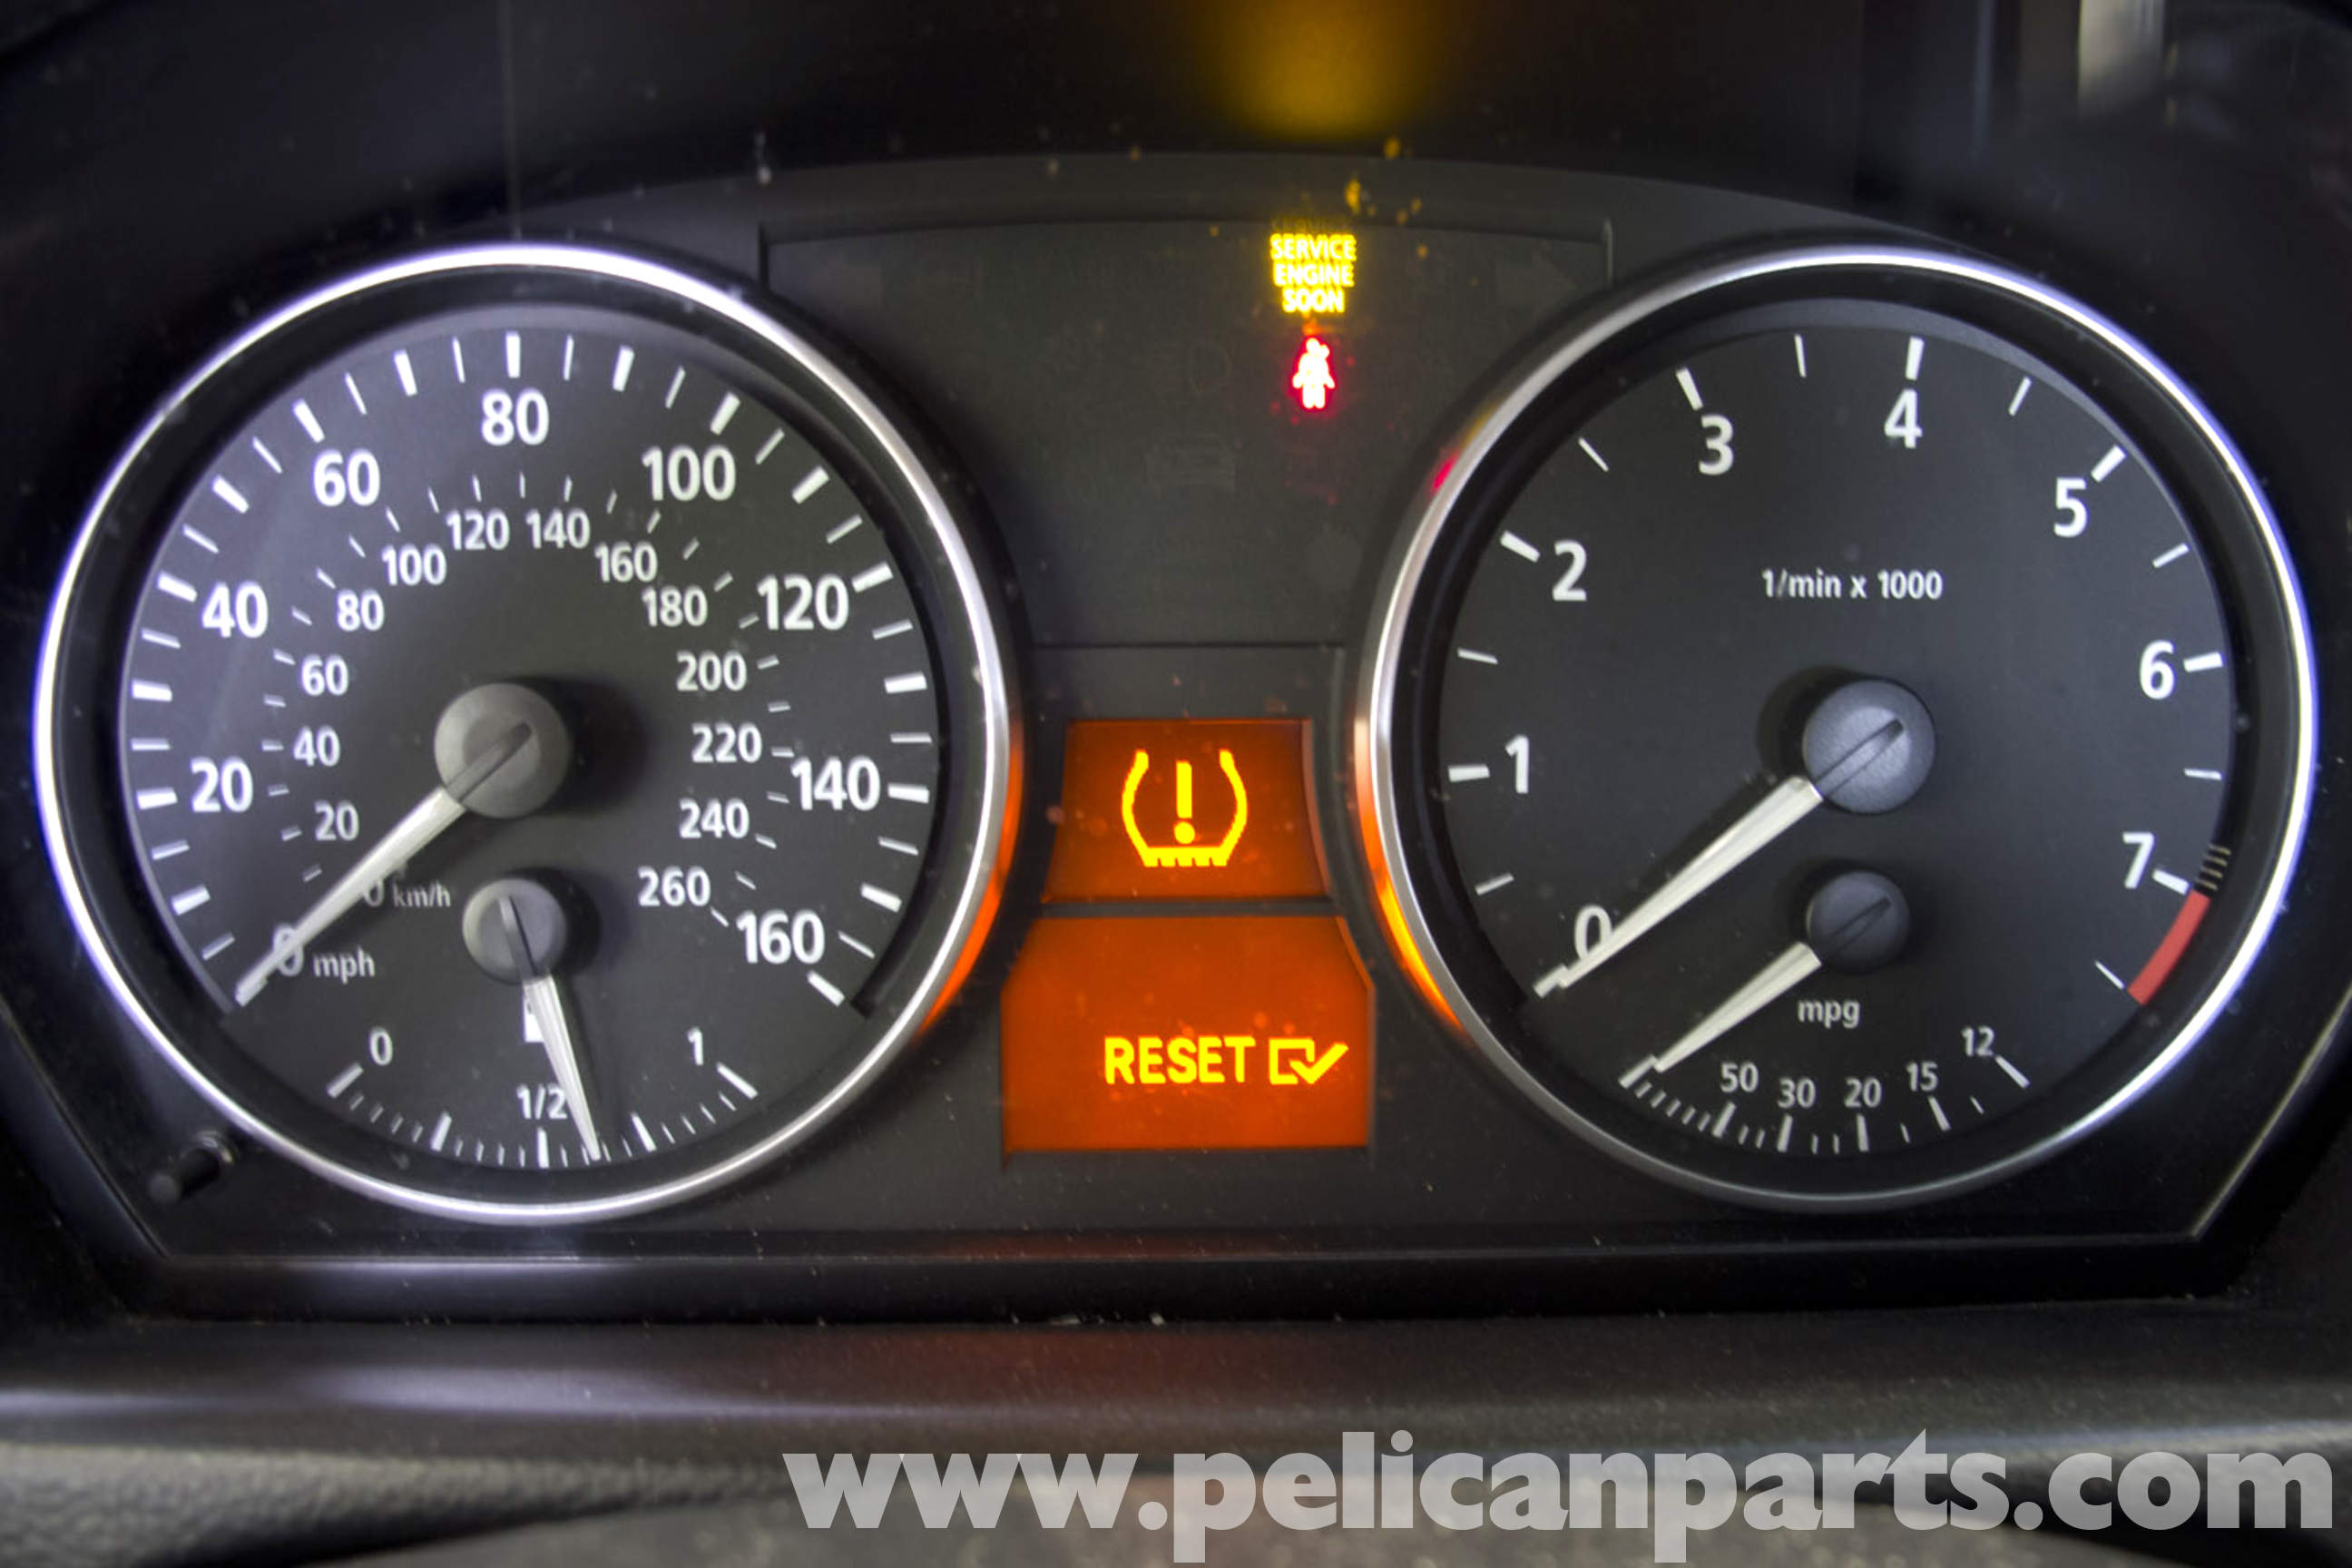 Bmw E90 Tire Pressure Warning Light Reset E91 E92 E93 Pelican